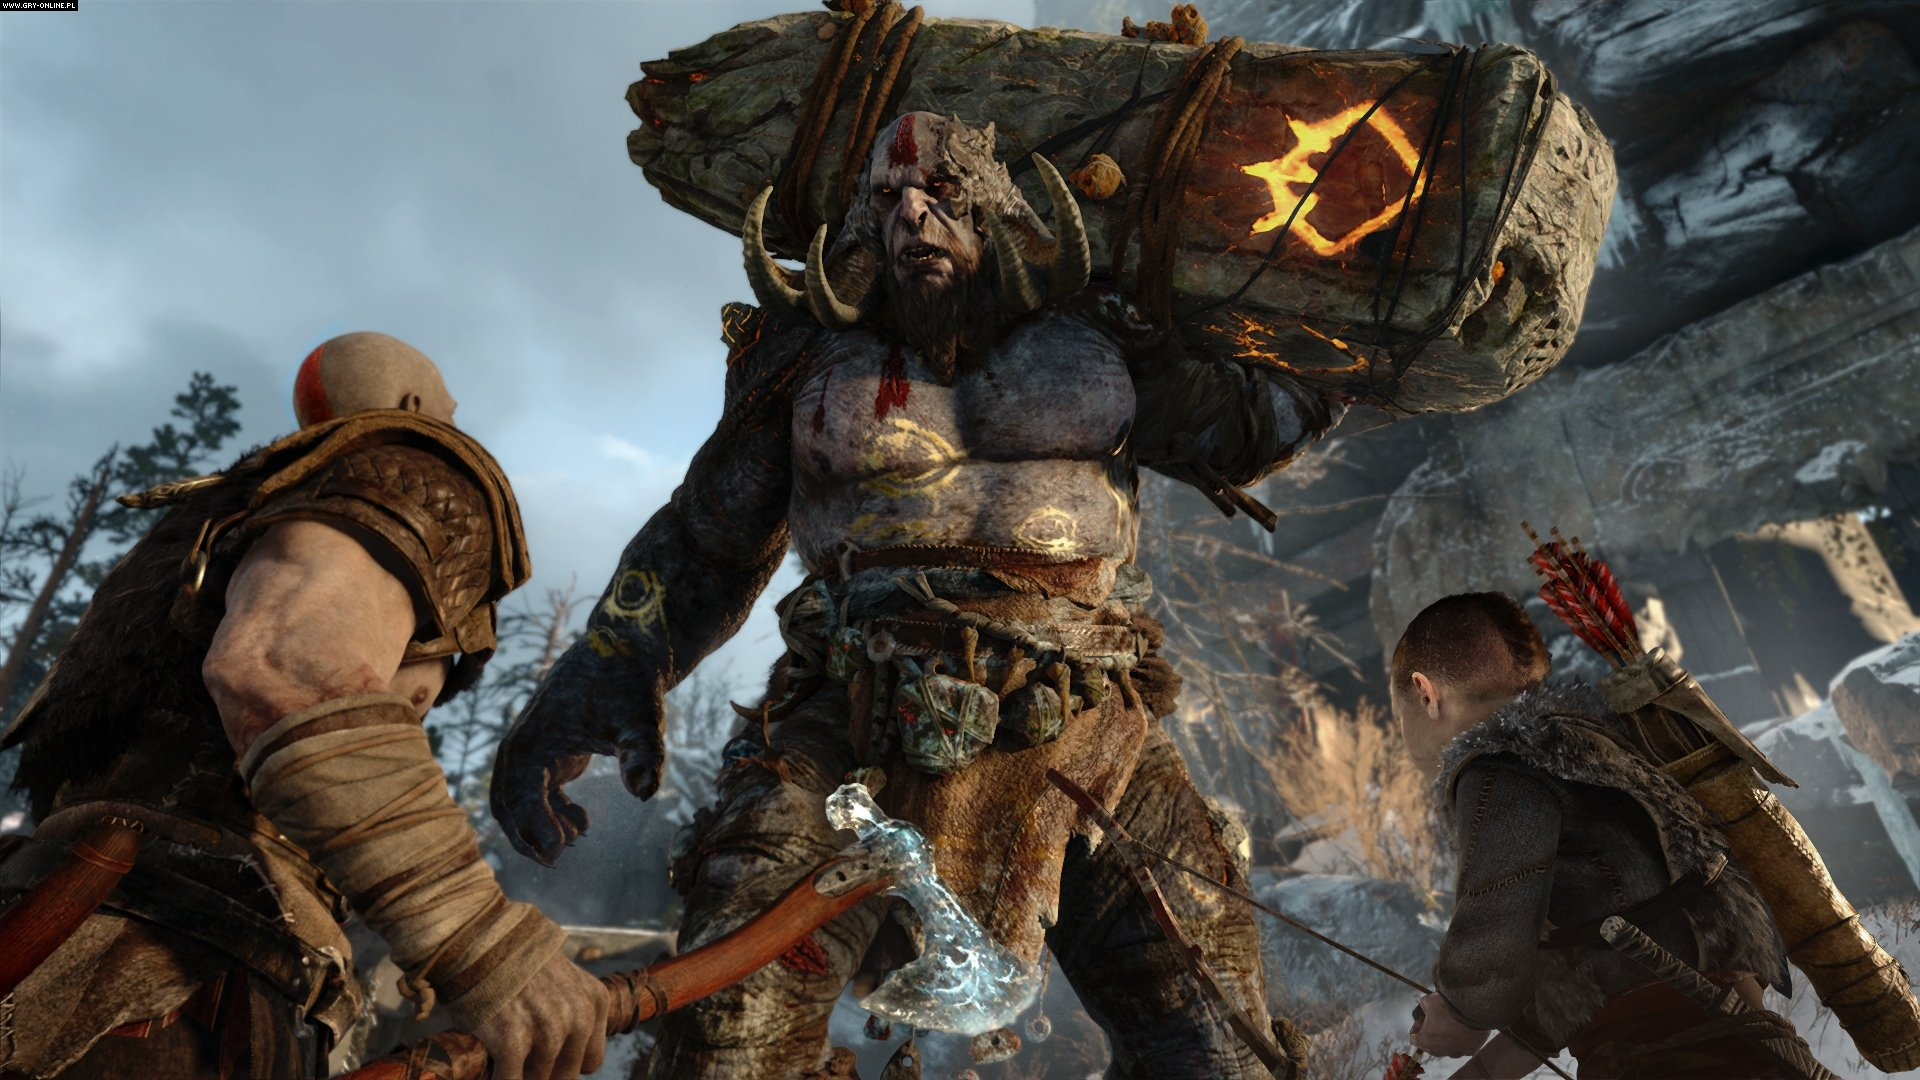 God of War PS4 Games Image 31/33, Sony Interactive Entertainment